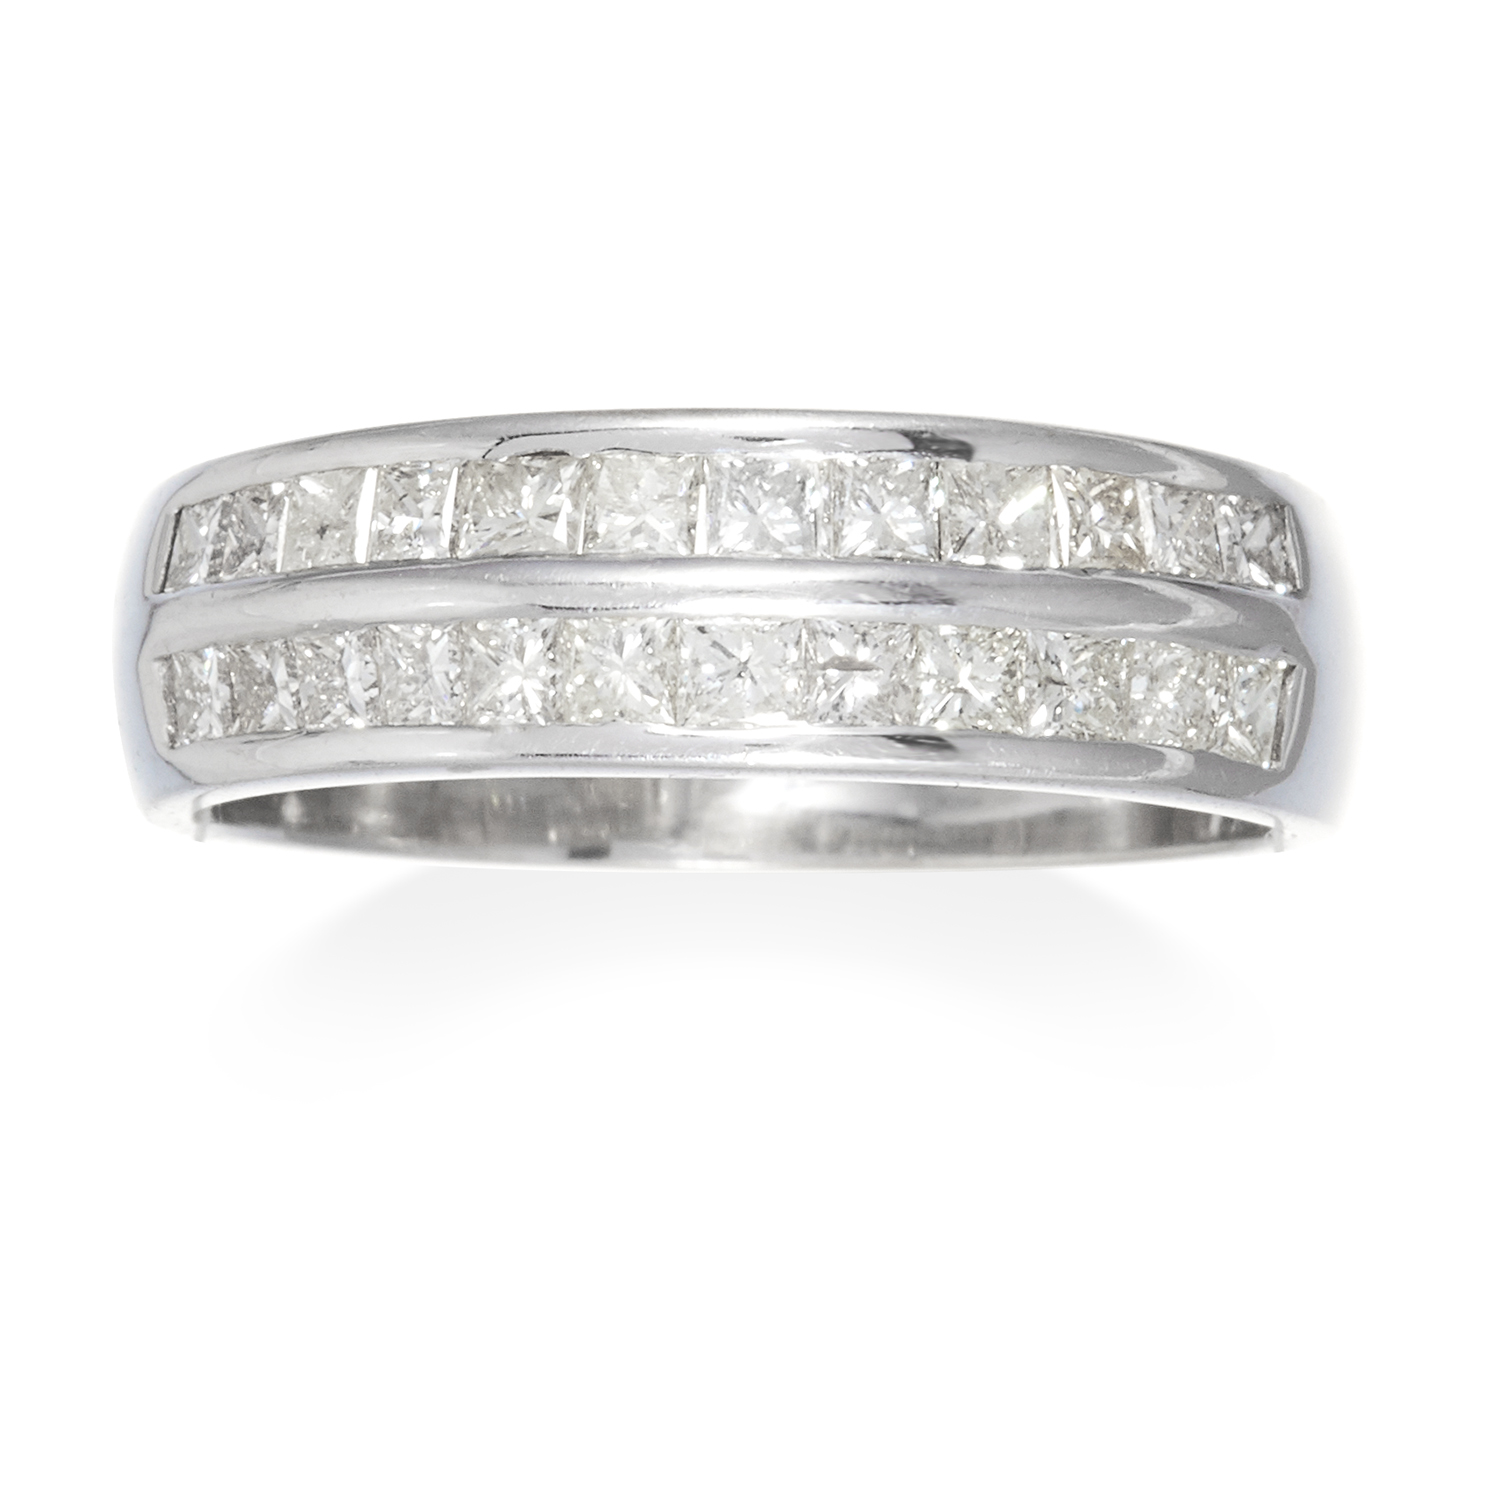 A 1.70 CARAT DIAMOND ETERNITY RING in 18ct white gold, set with two rows of princess cut diamonds